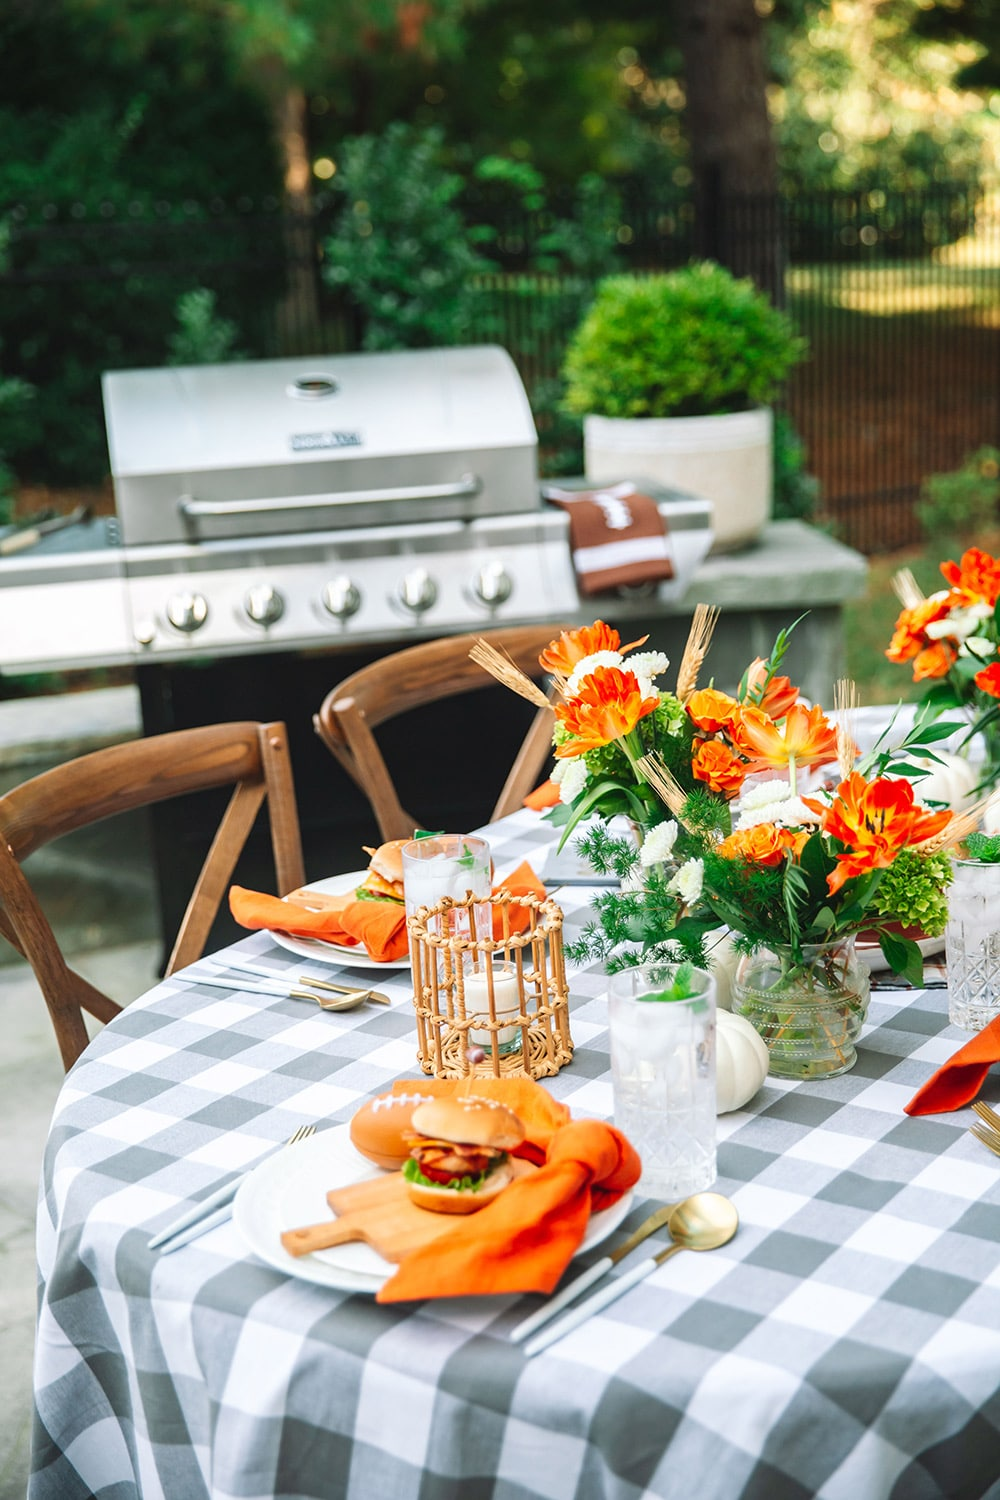 Grilling for Tailgating season